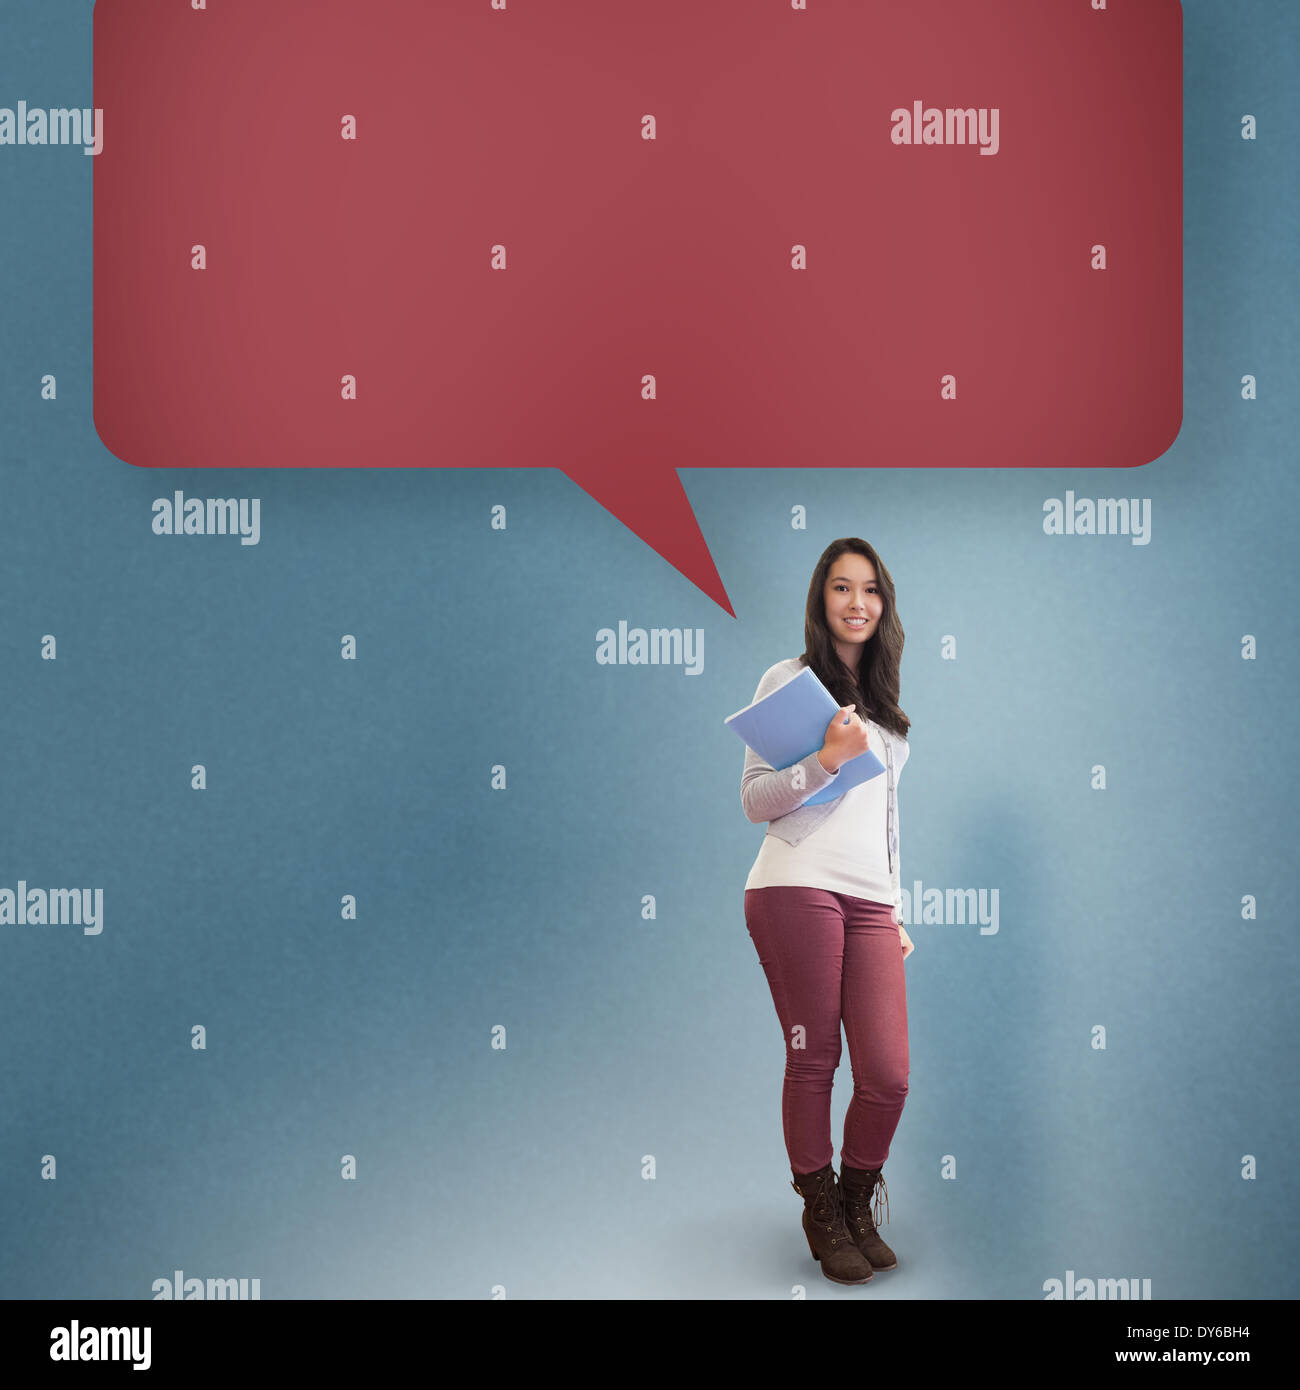 Composite image of smiling student holding textbook with speech bubble - Stock Image